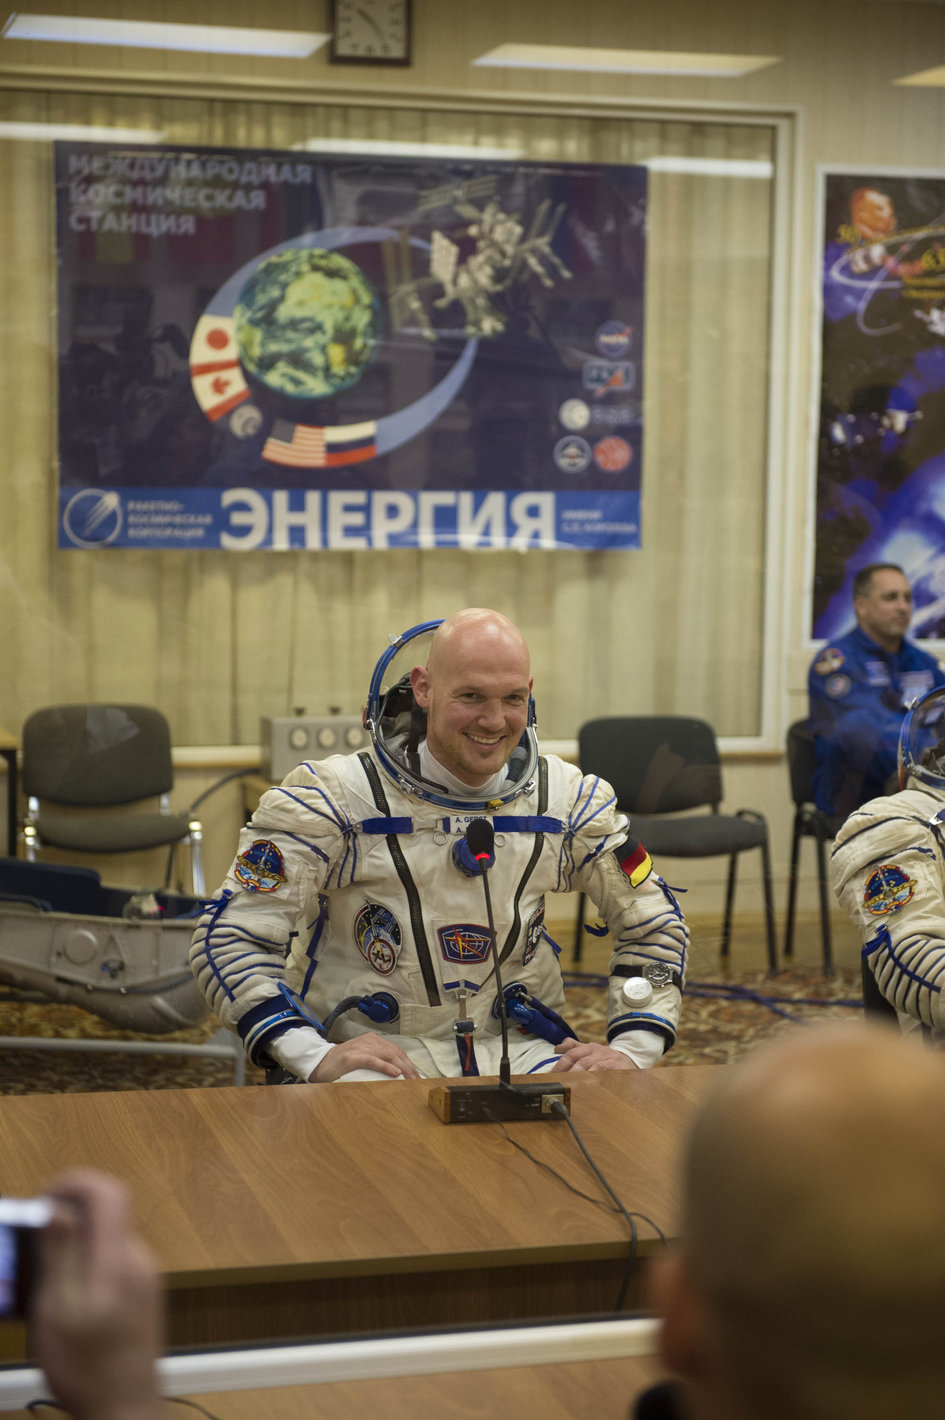 Alexander Gerst dressed in his Russian Sokol suit